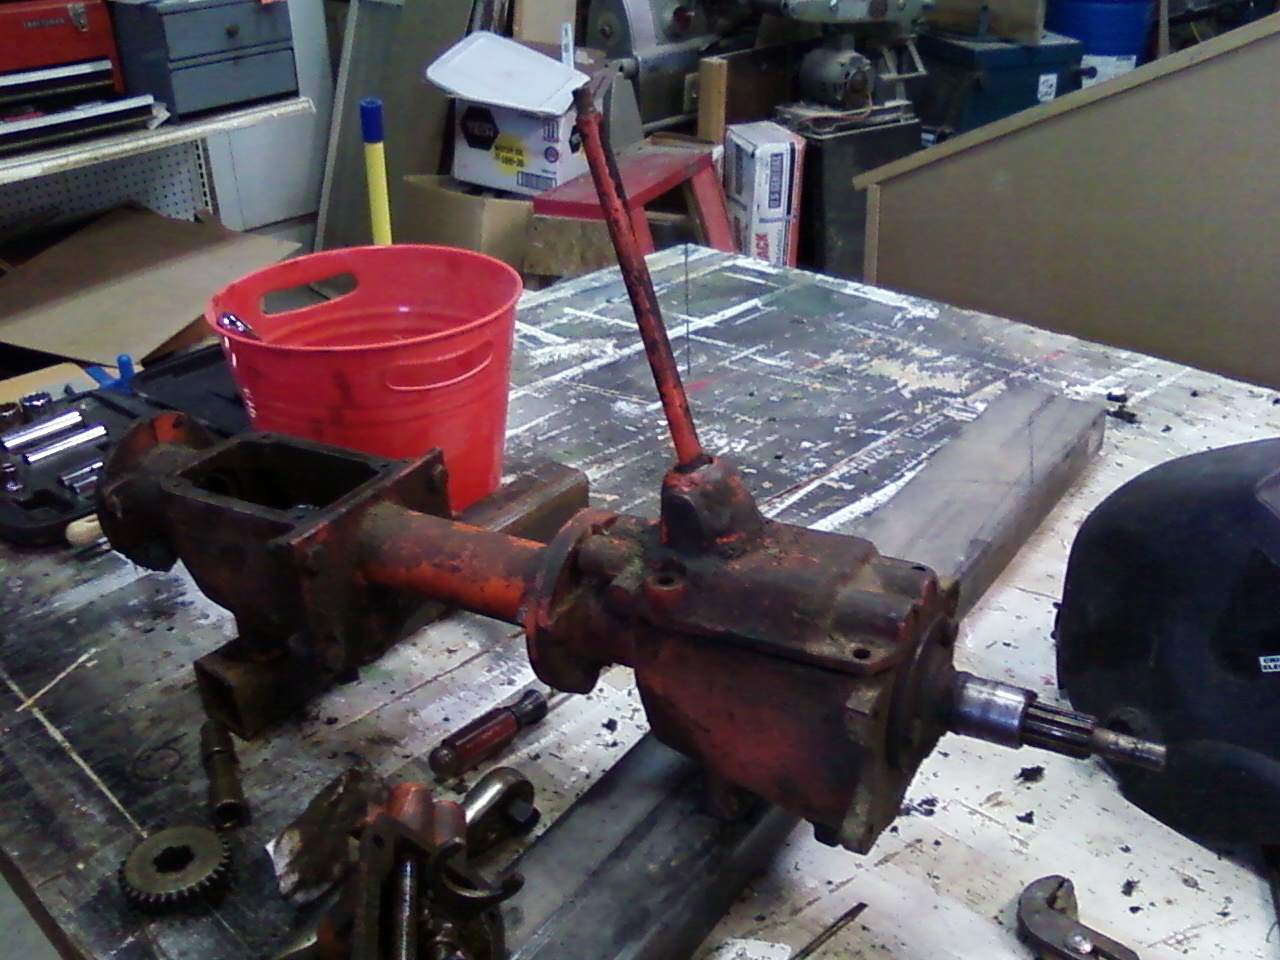 Power King Economy Tractor Restoration: Fixing Jammed Transmission Shifting  Handle